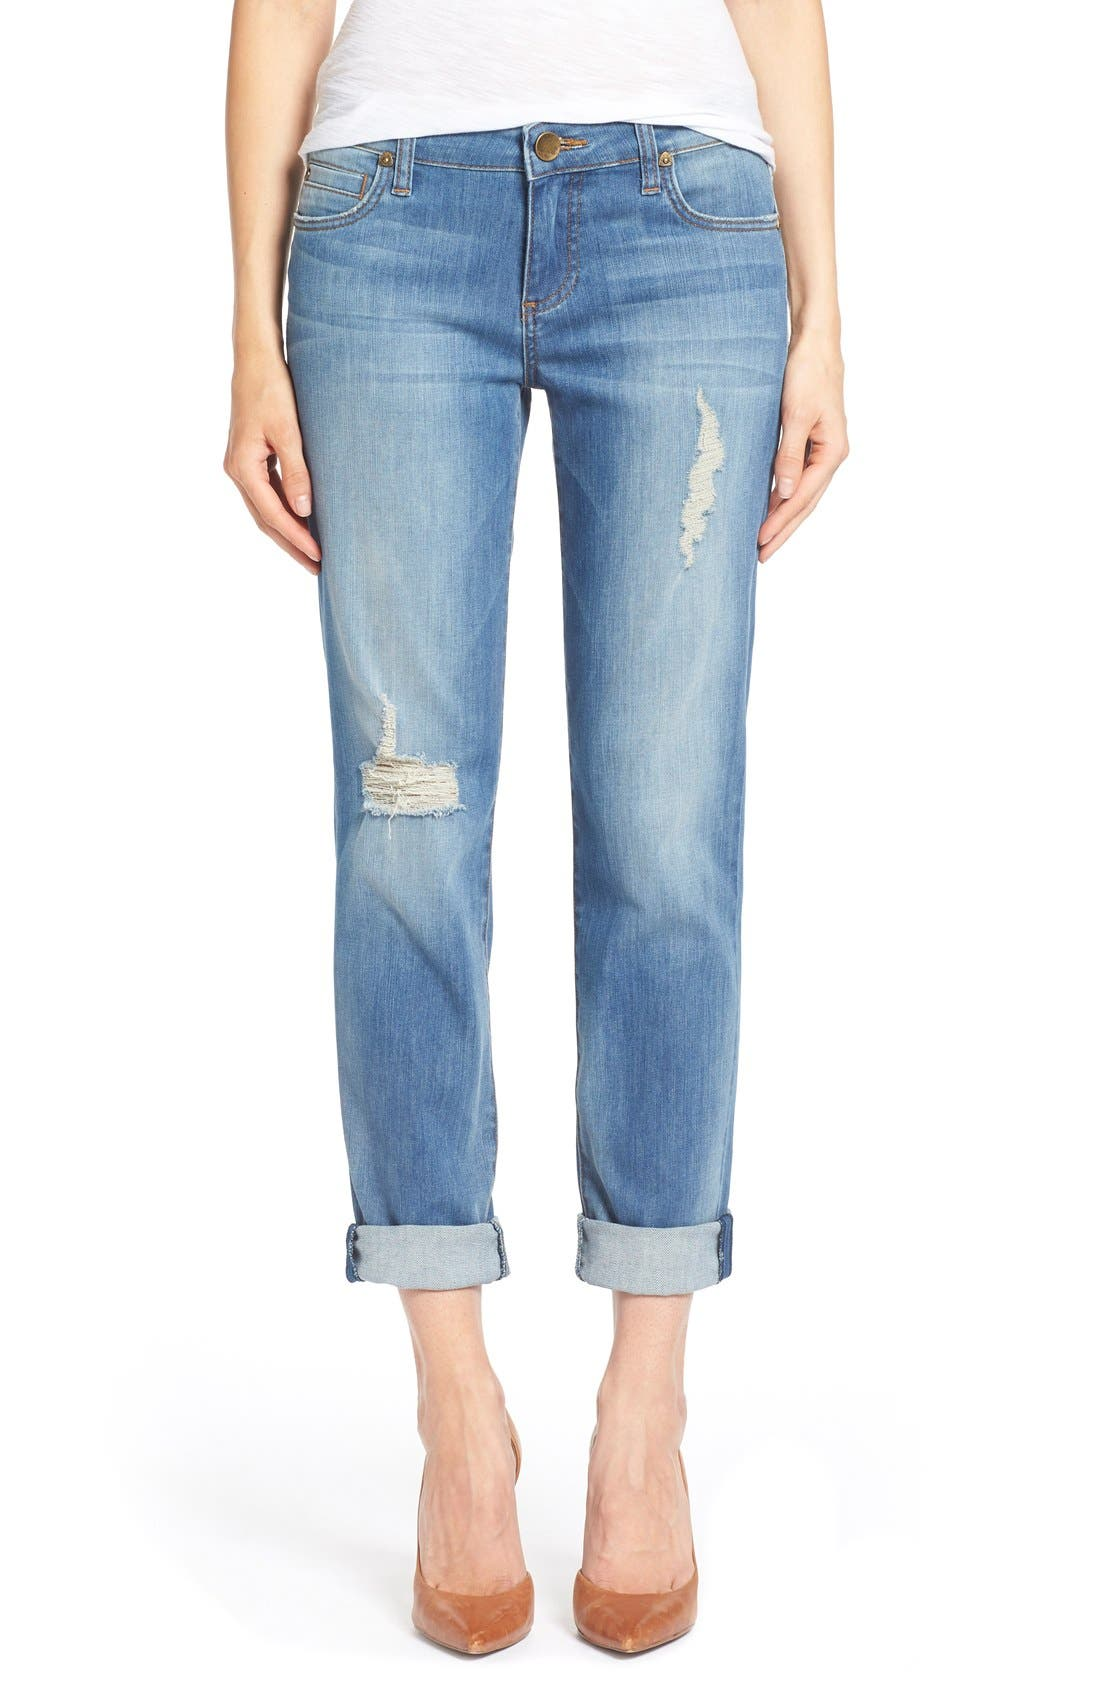 Alternate Image 1 Selected - KUT from the Kloth 'Catherine' Distressed Stretch Boyfriend Jeans (Smile)